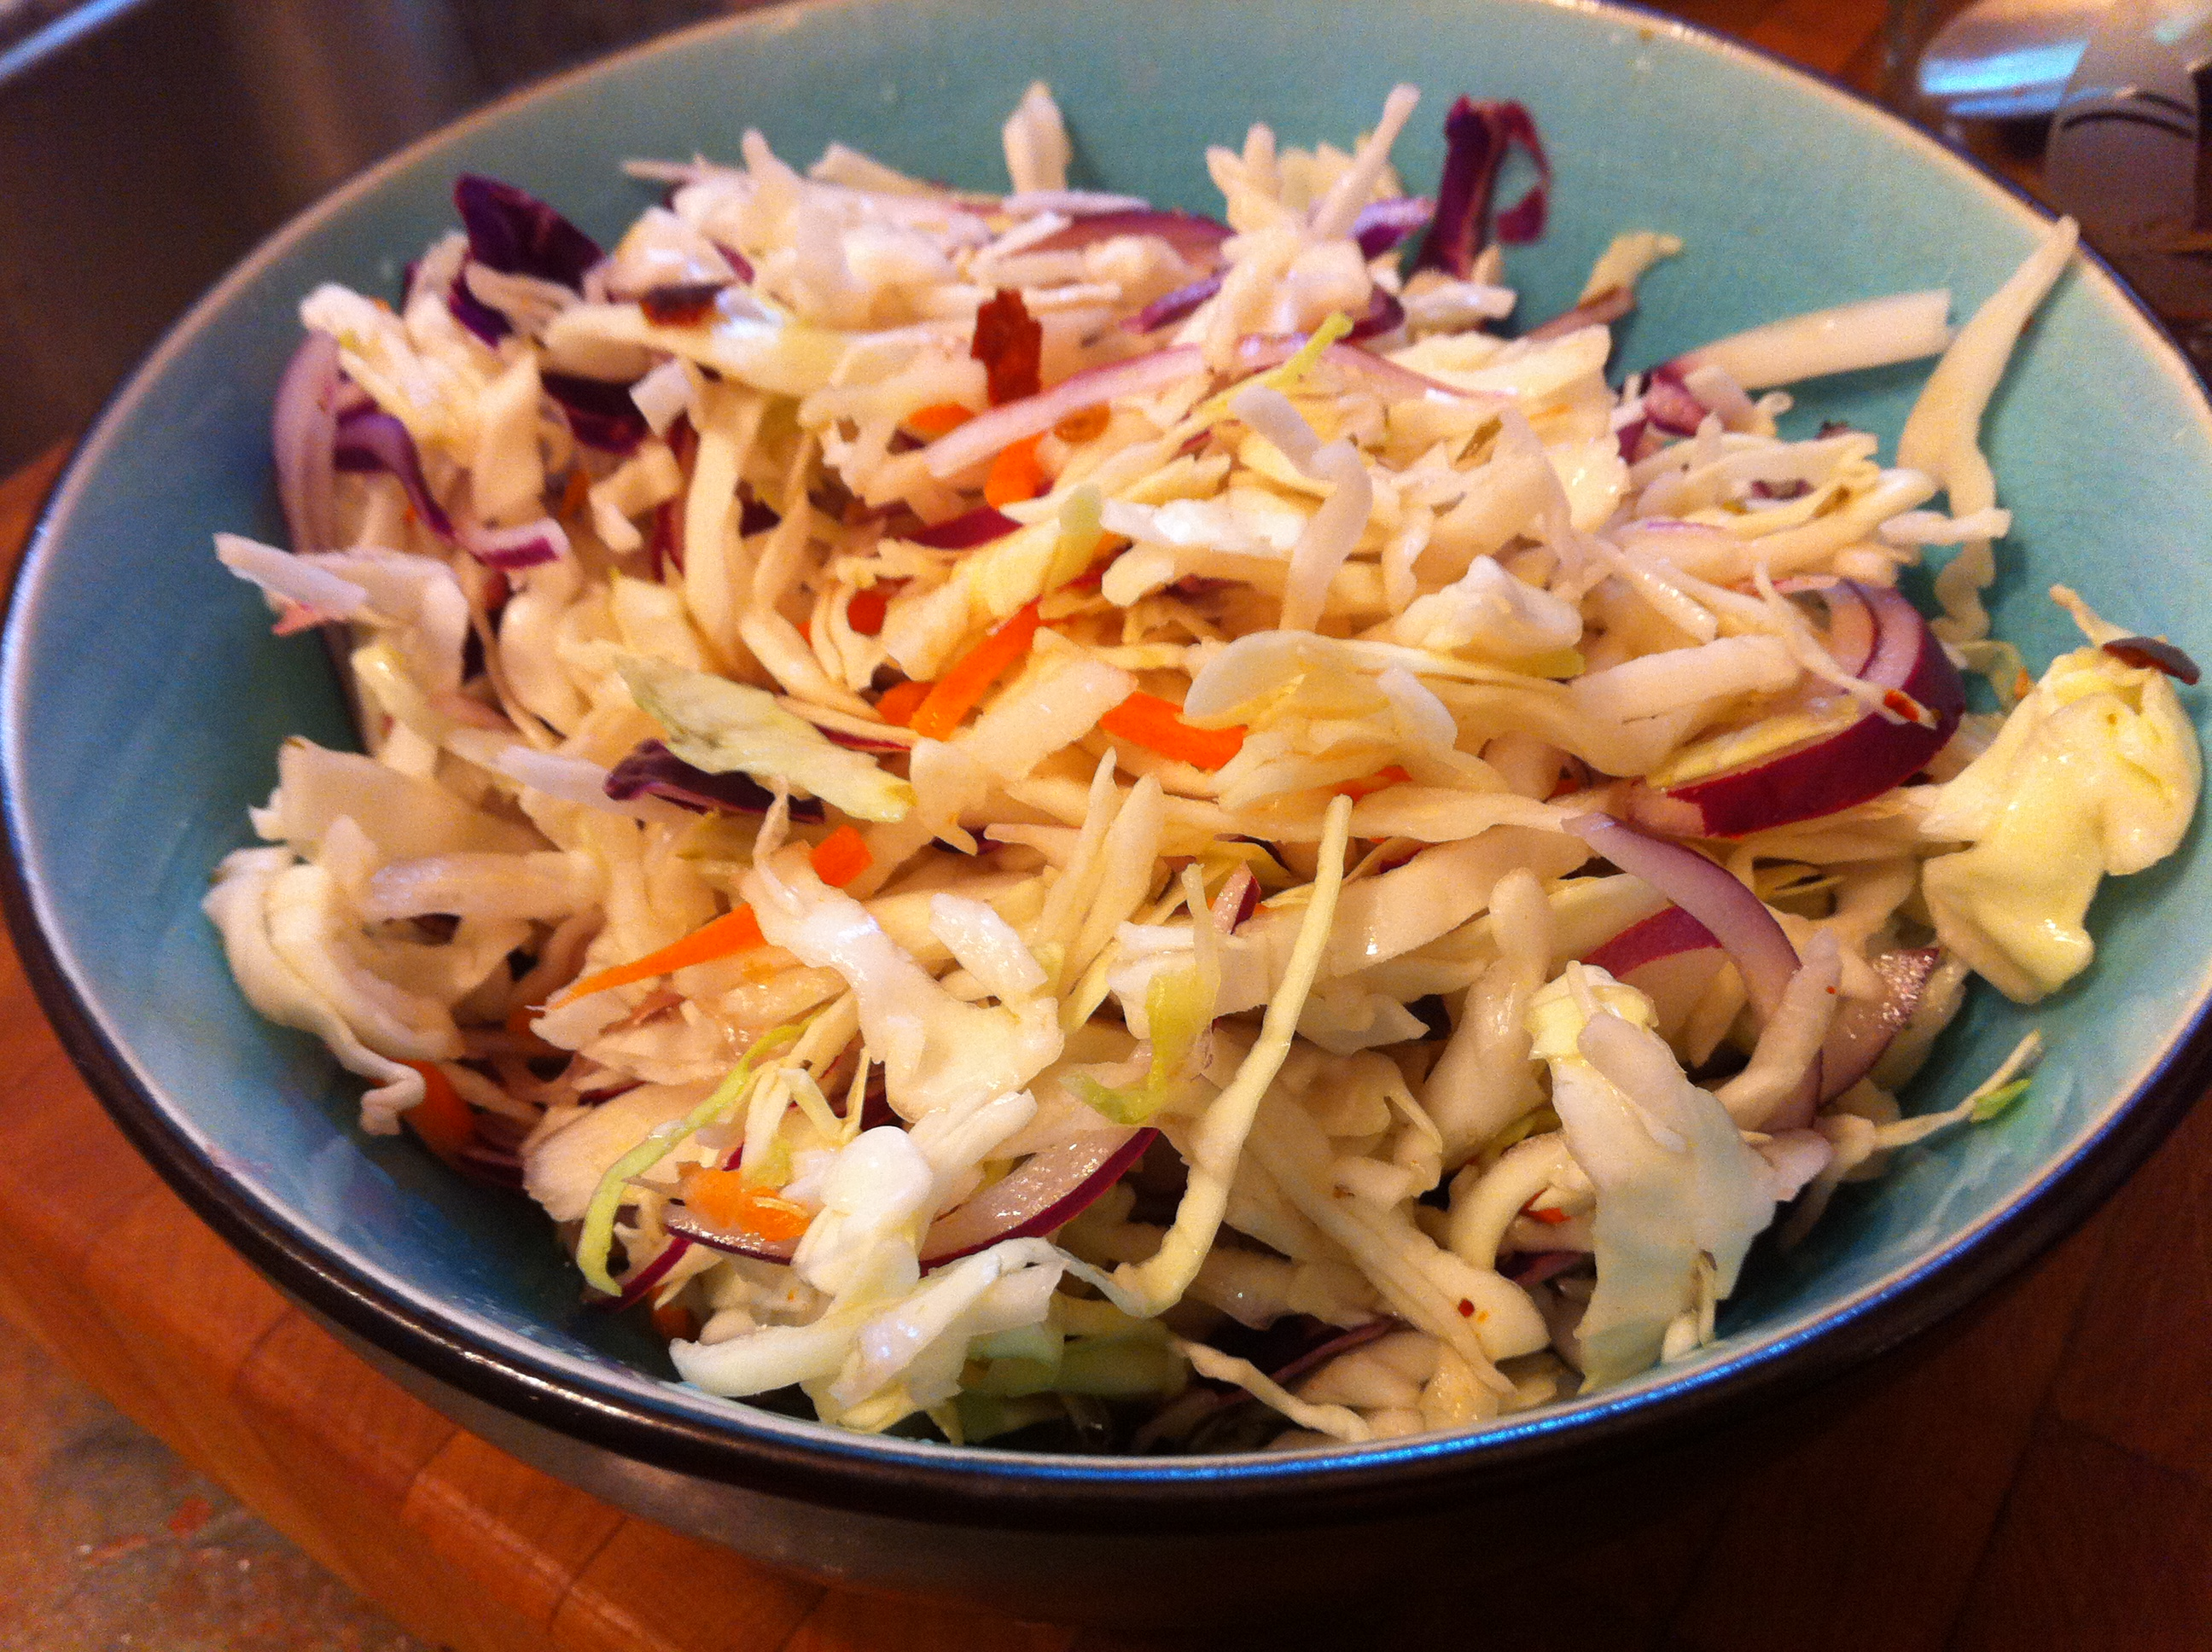 Curtido+Recipe Curtido (aka. The Best Coleslaw Ever) | Kitchen Operas